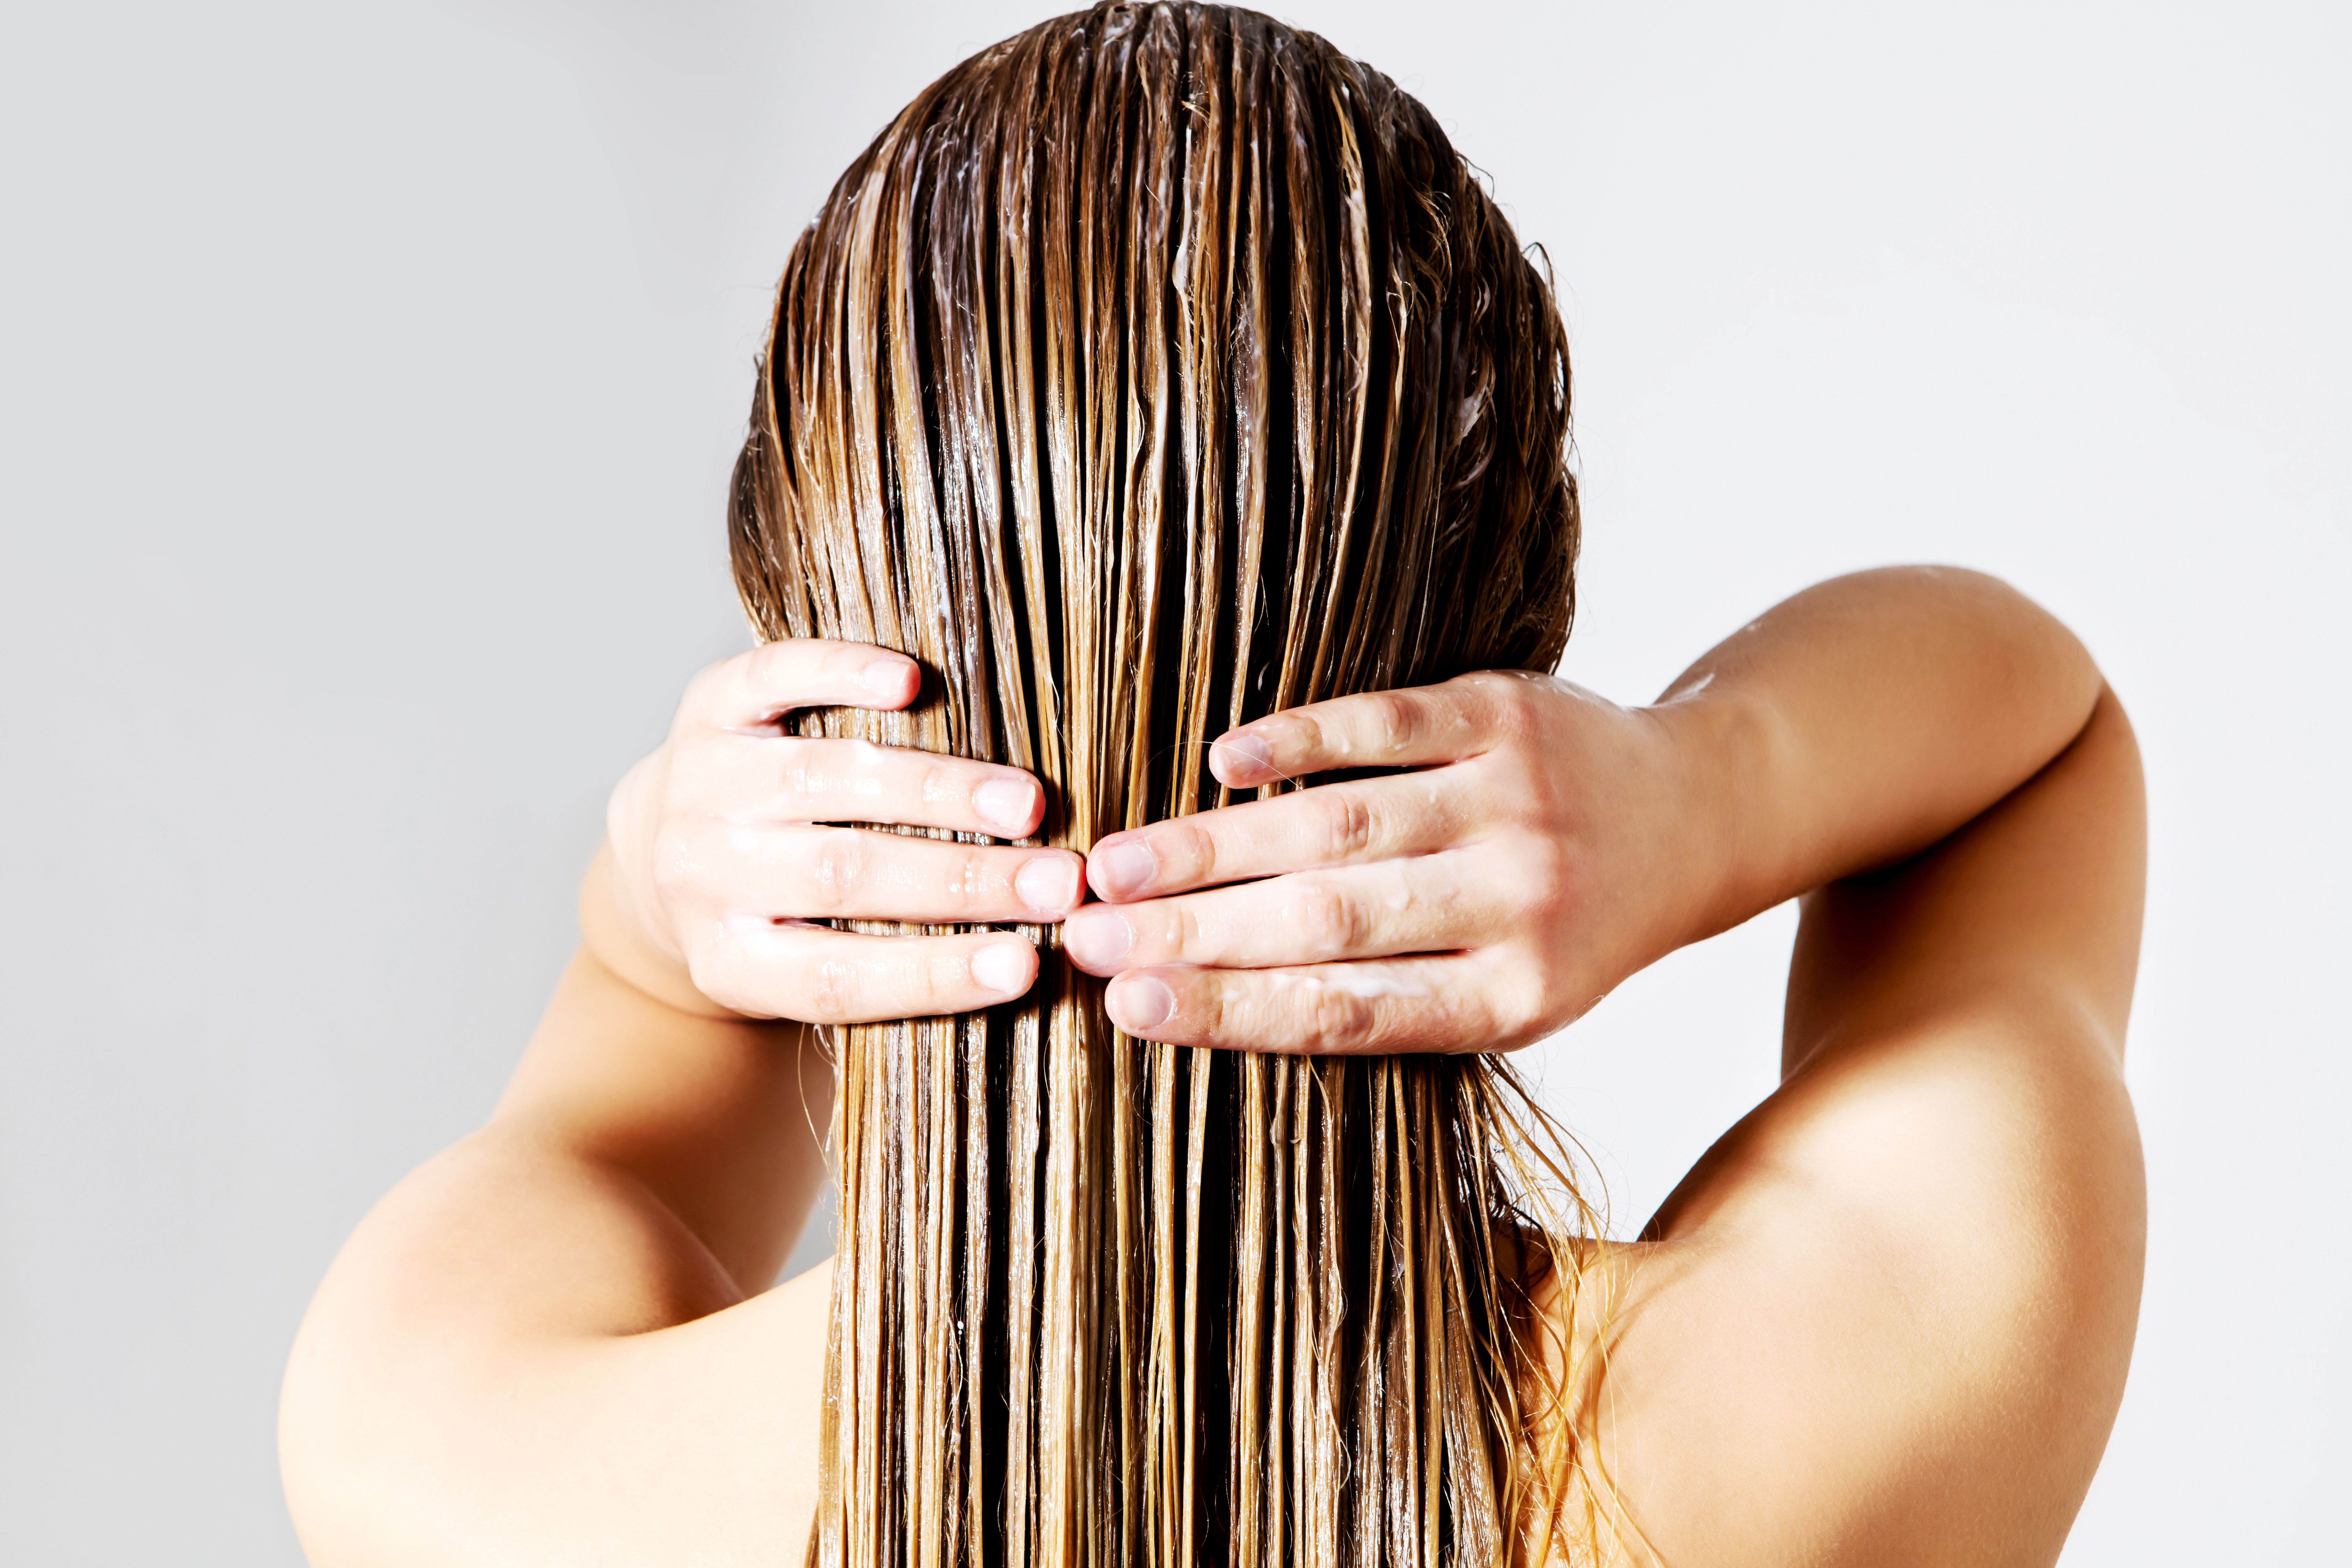 The Best Way To Use Hair Oil, According To Experts